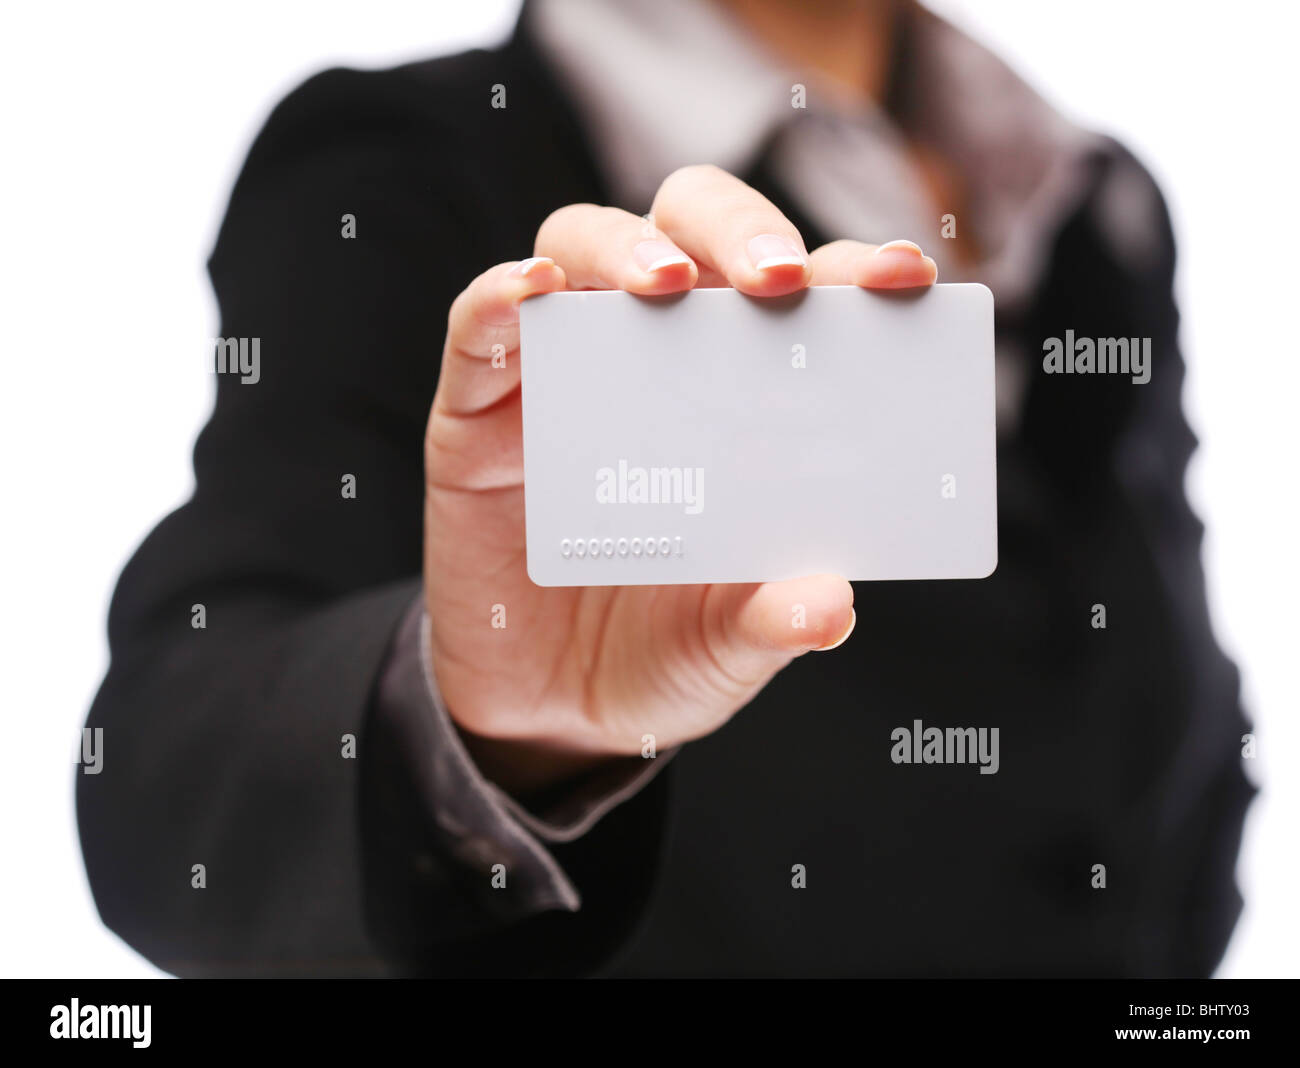 Credit card in woman hand - Stock Image